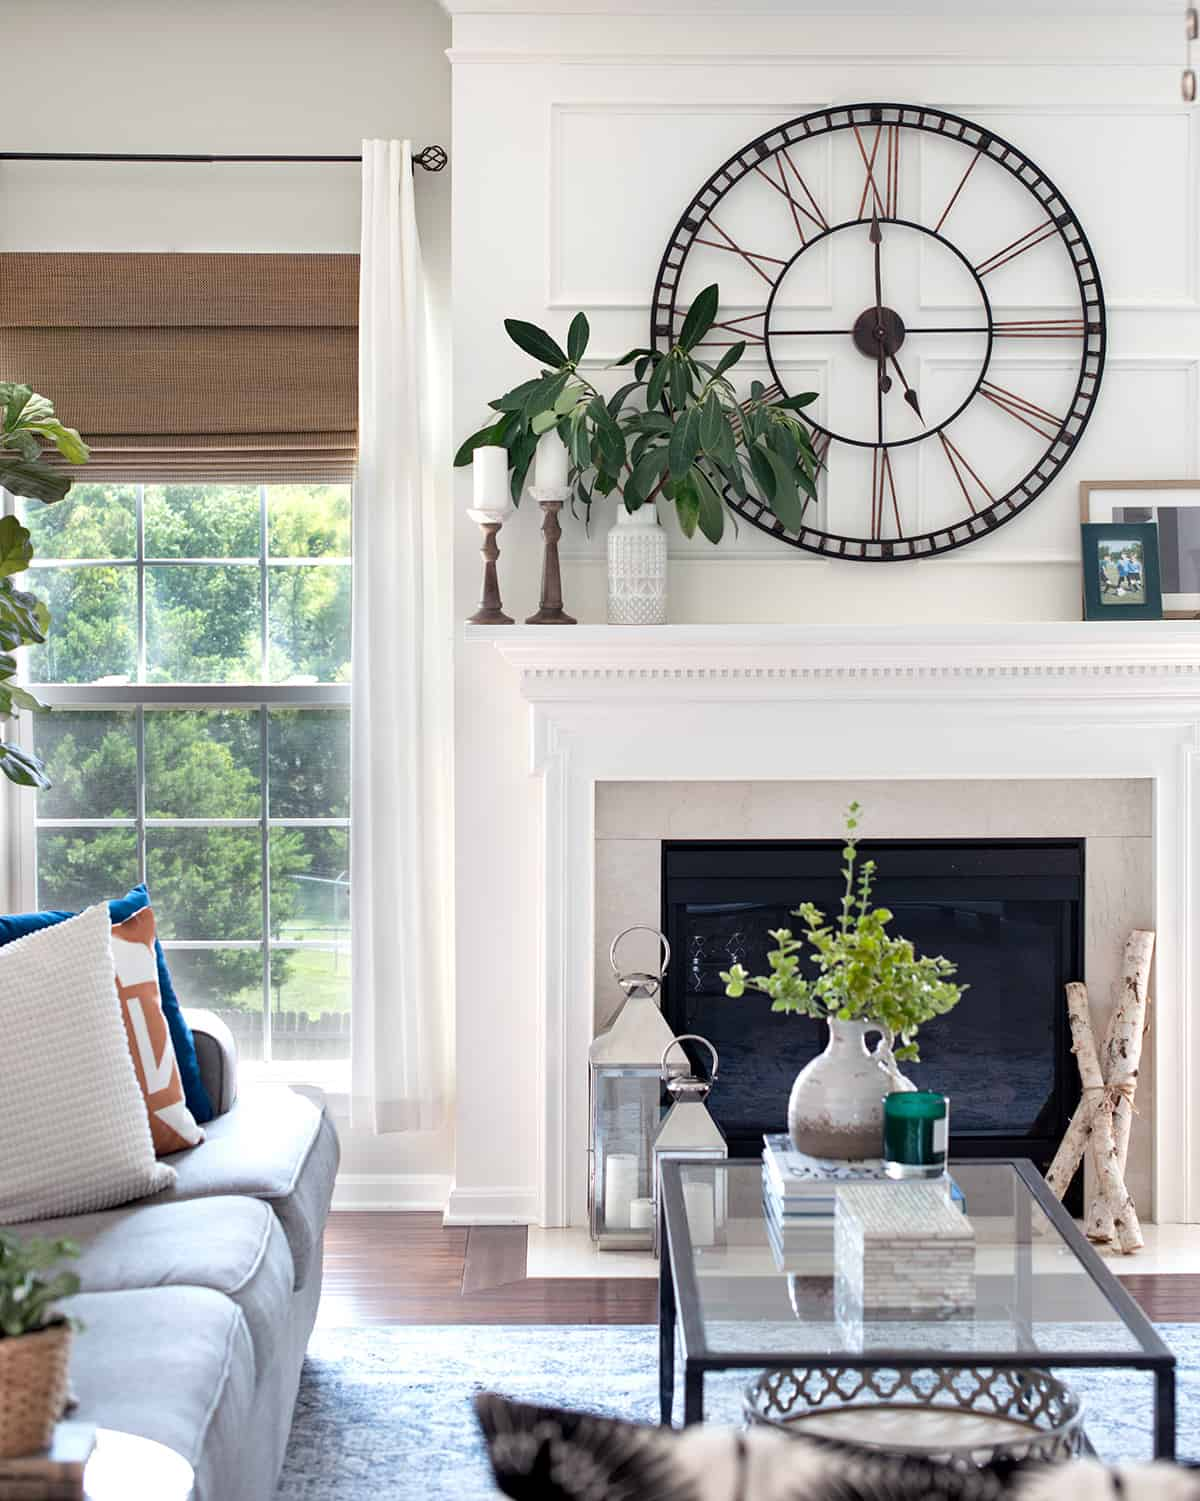 Neutral living room design with green accents and traditional fireplace style.